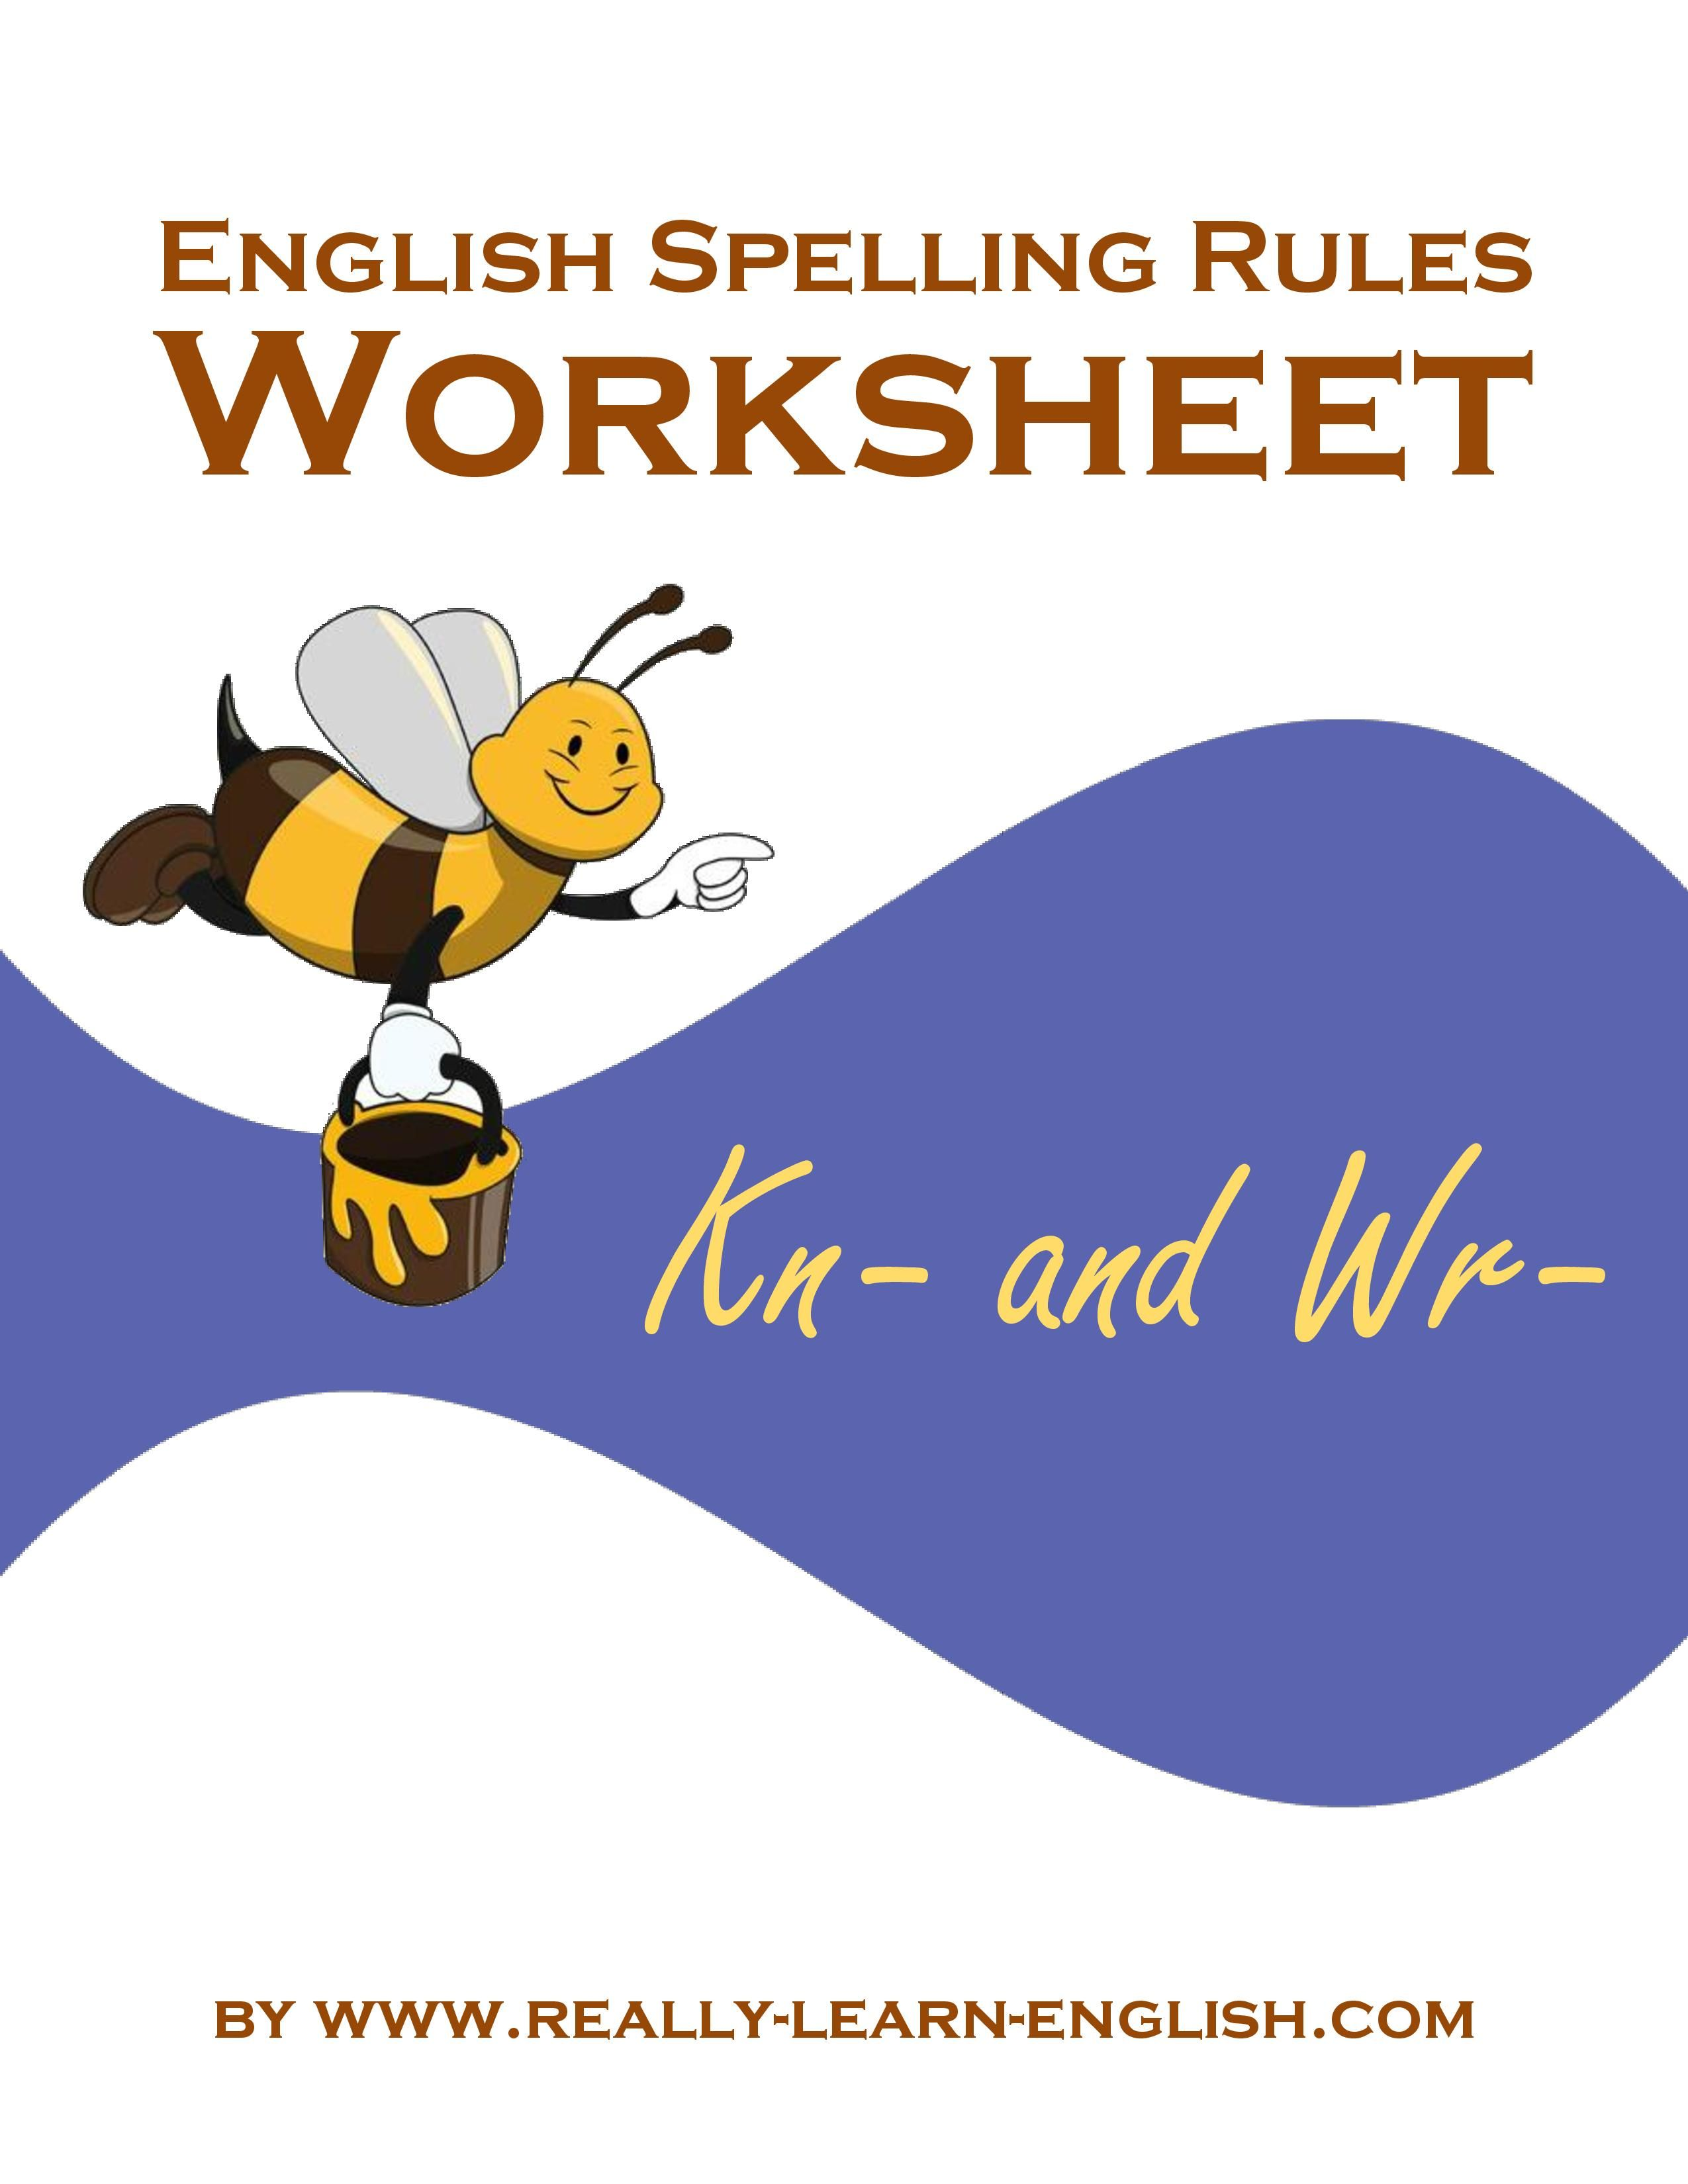 Kn And Wr Are Two Common Letter Combinations At The